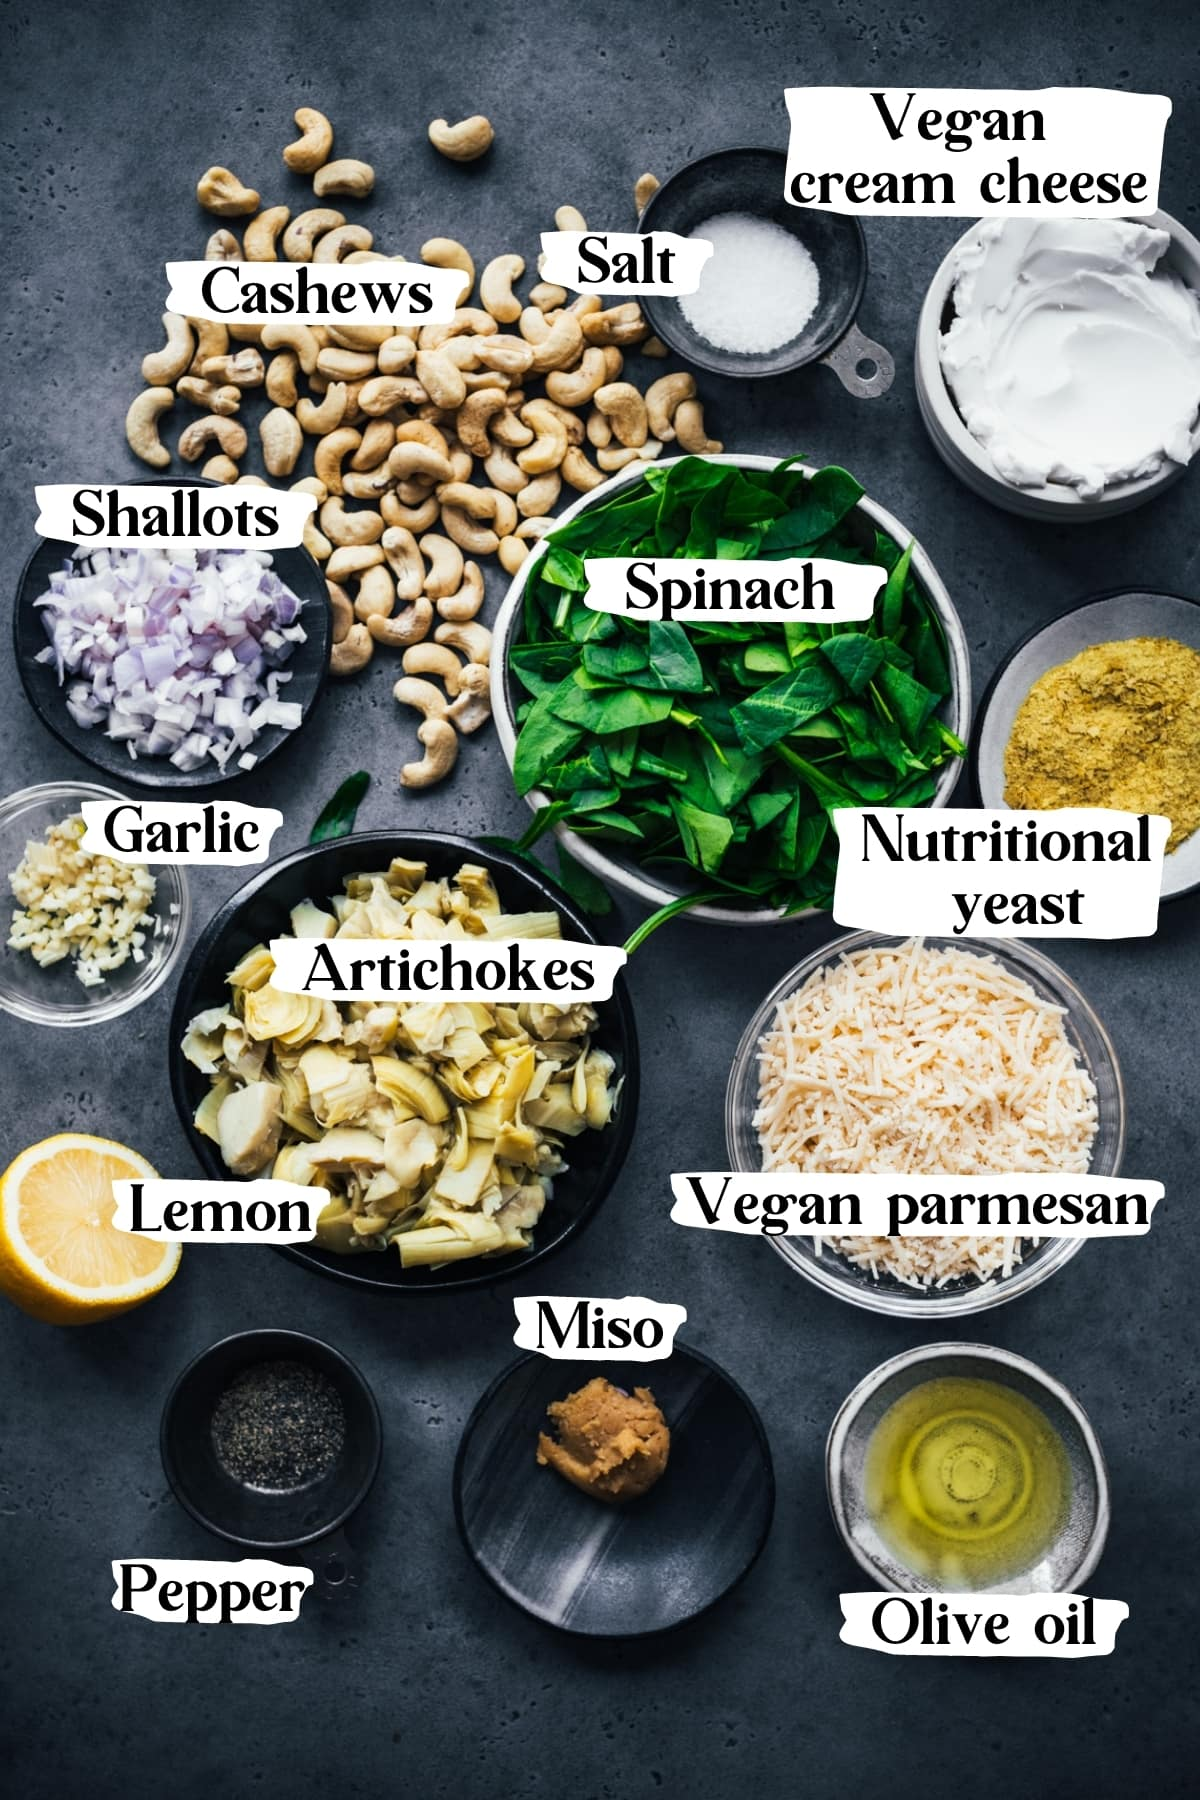 overhead view of ingredients for vegan spinach artichoke dip, including cashews, vegan cheese, spinach, artichokes, shallots.